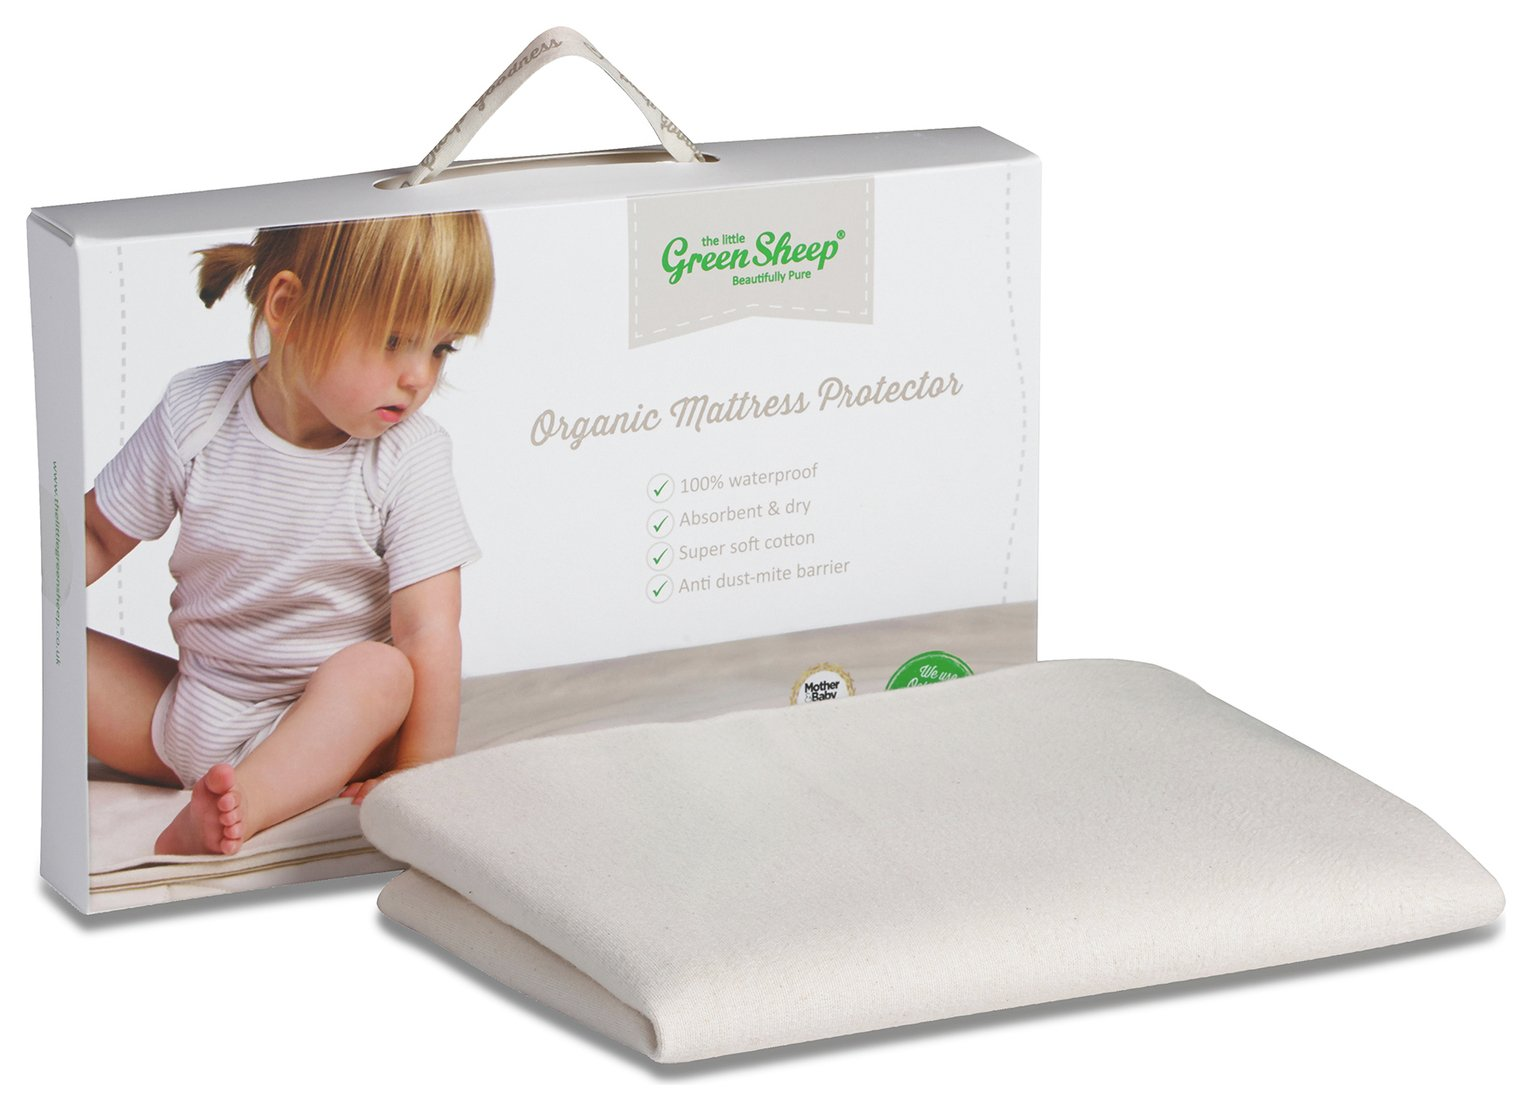 The Little Green Sheep Supersoft Mattress Protector